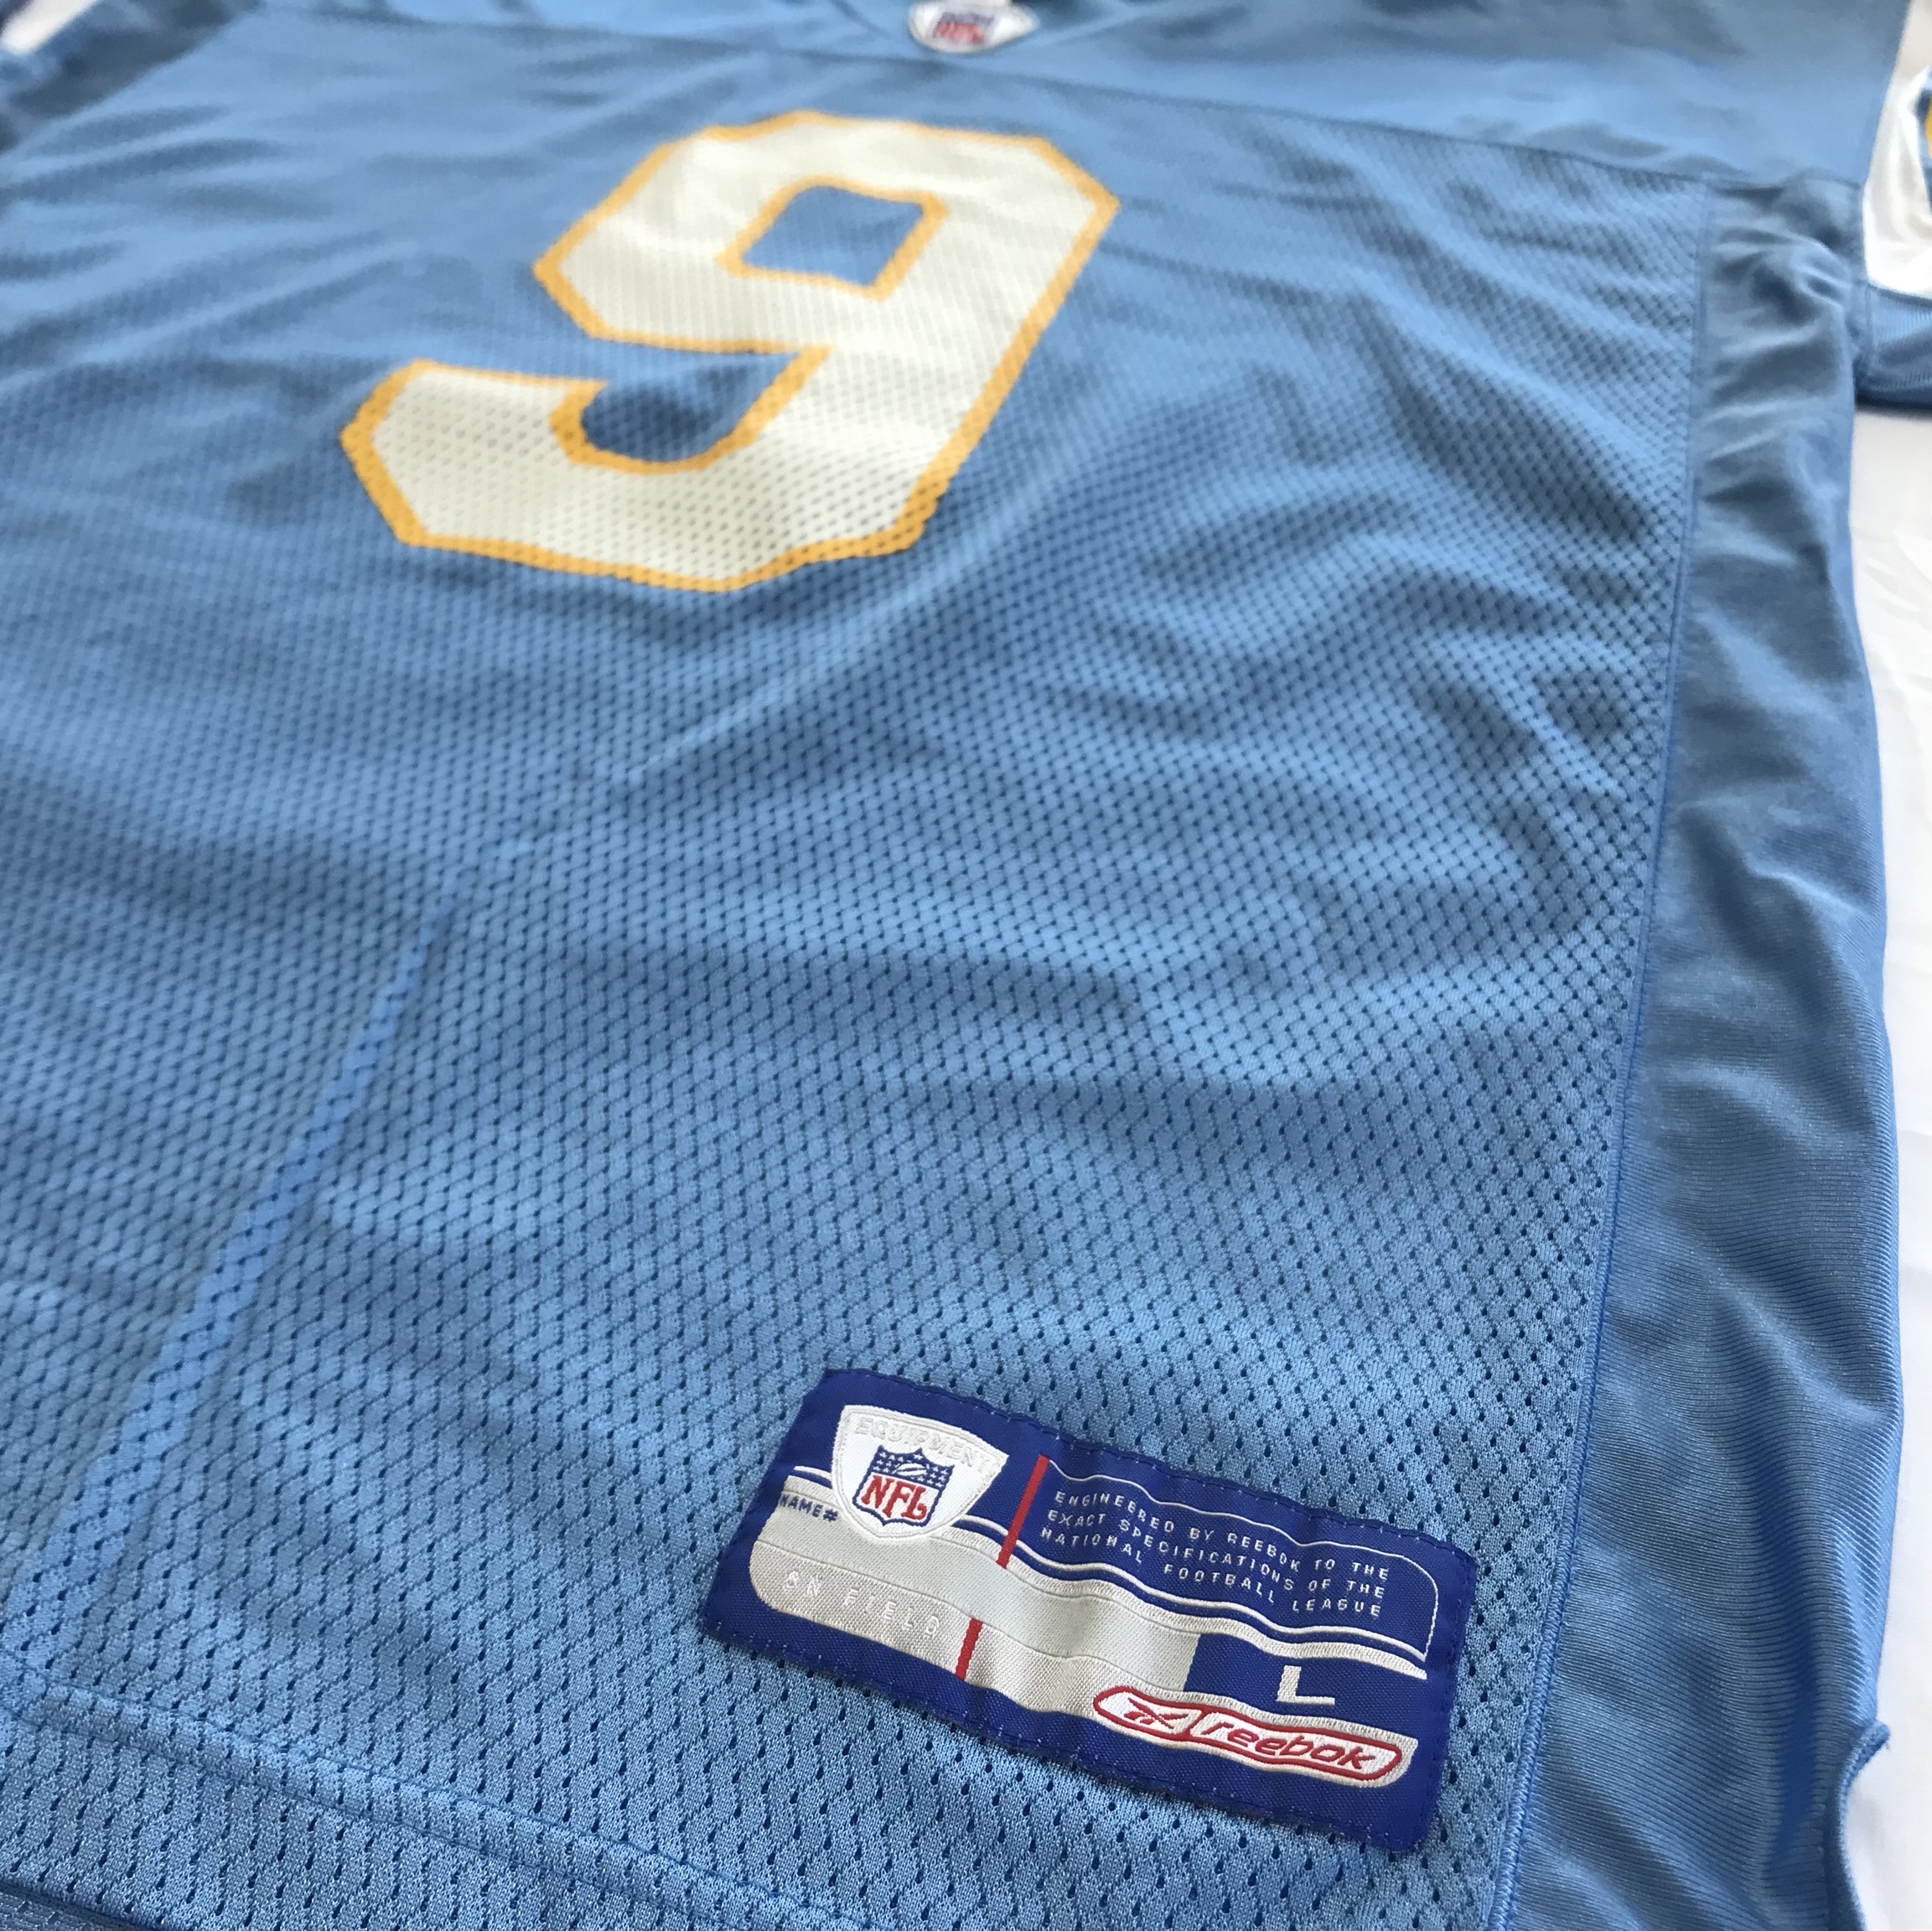 huge selection of f5970 b65b0 Drew Brees San Diego Chargers jersey. Size Large.... - Depop